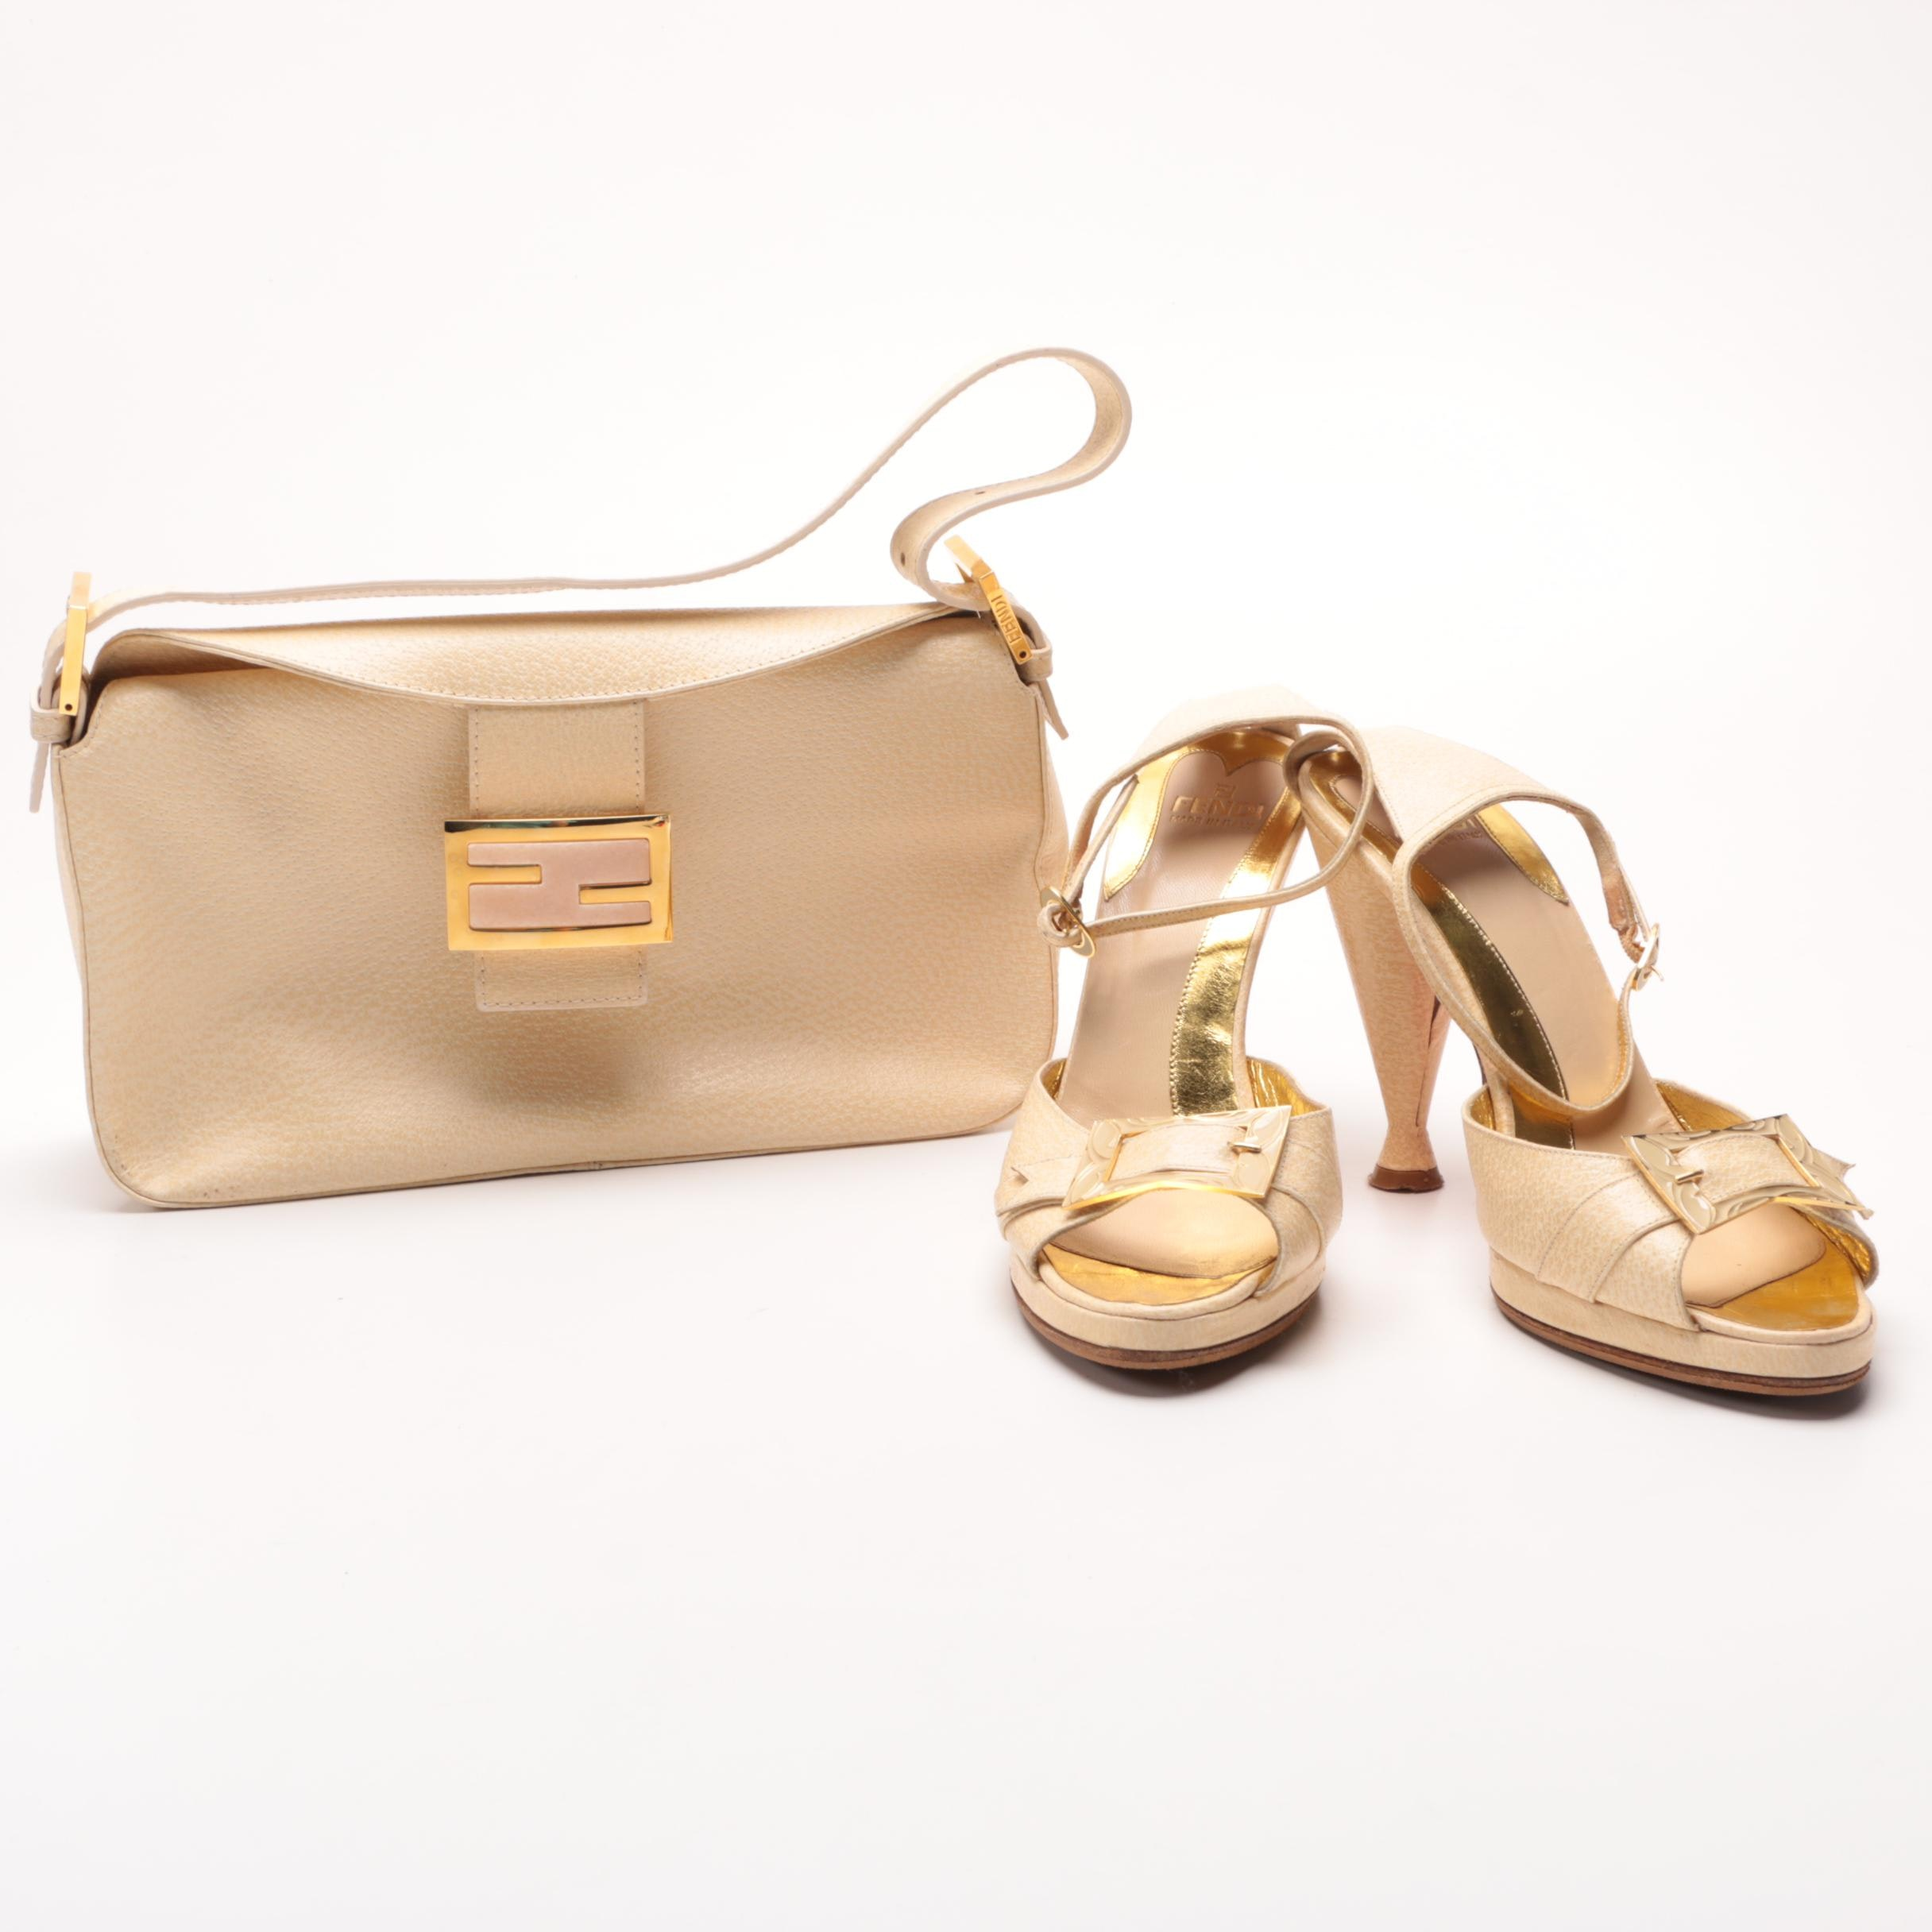 Fendi Leather Bag and Heels